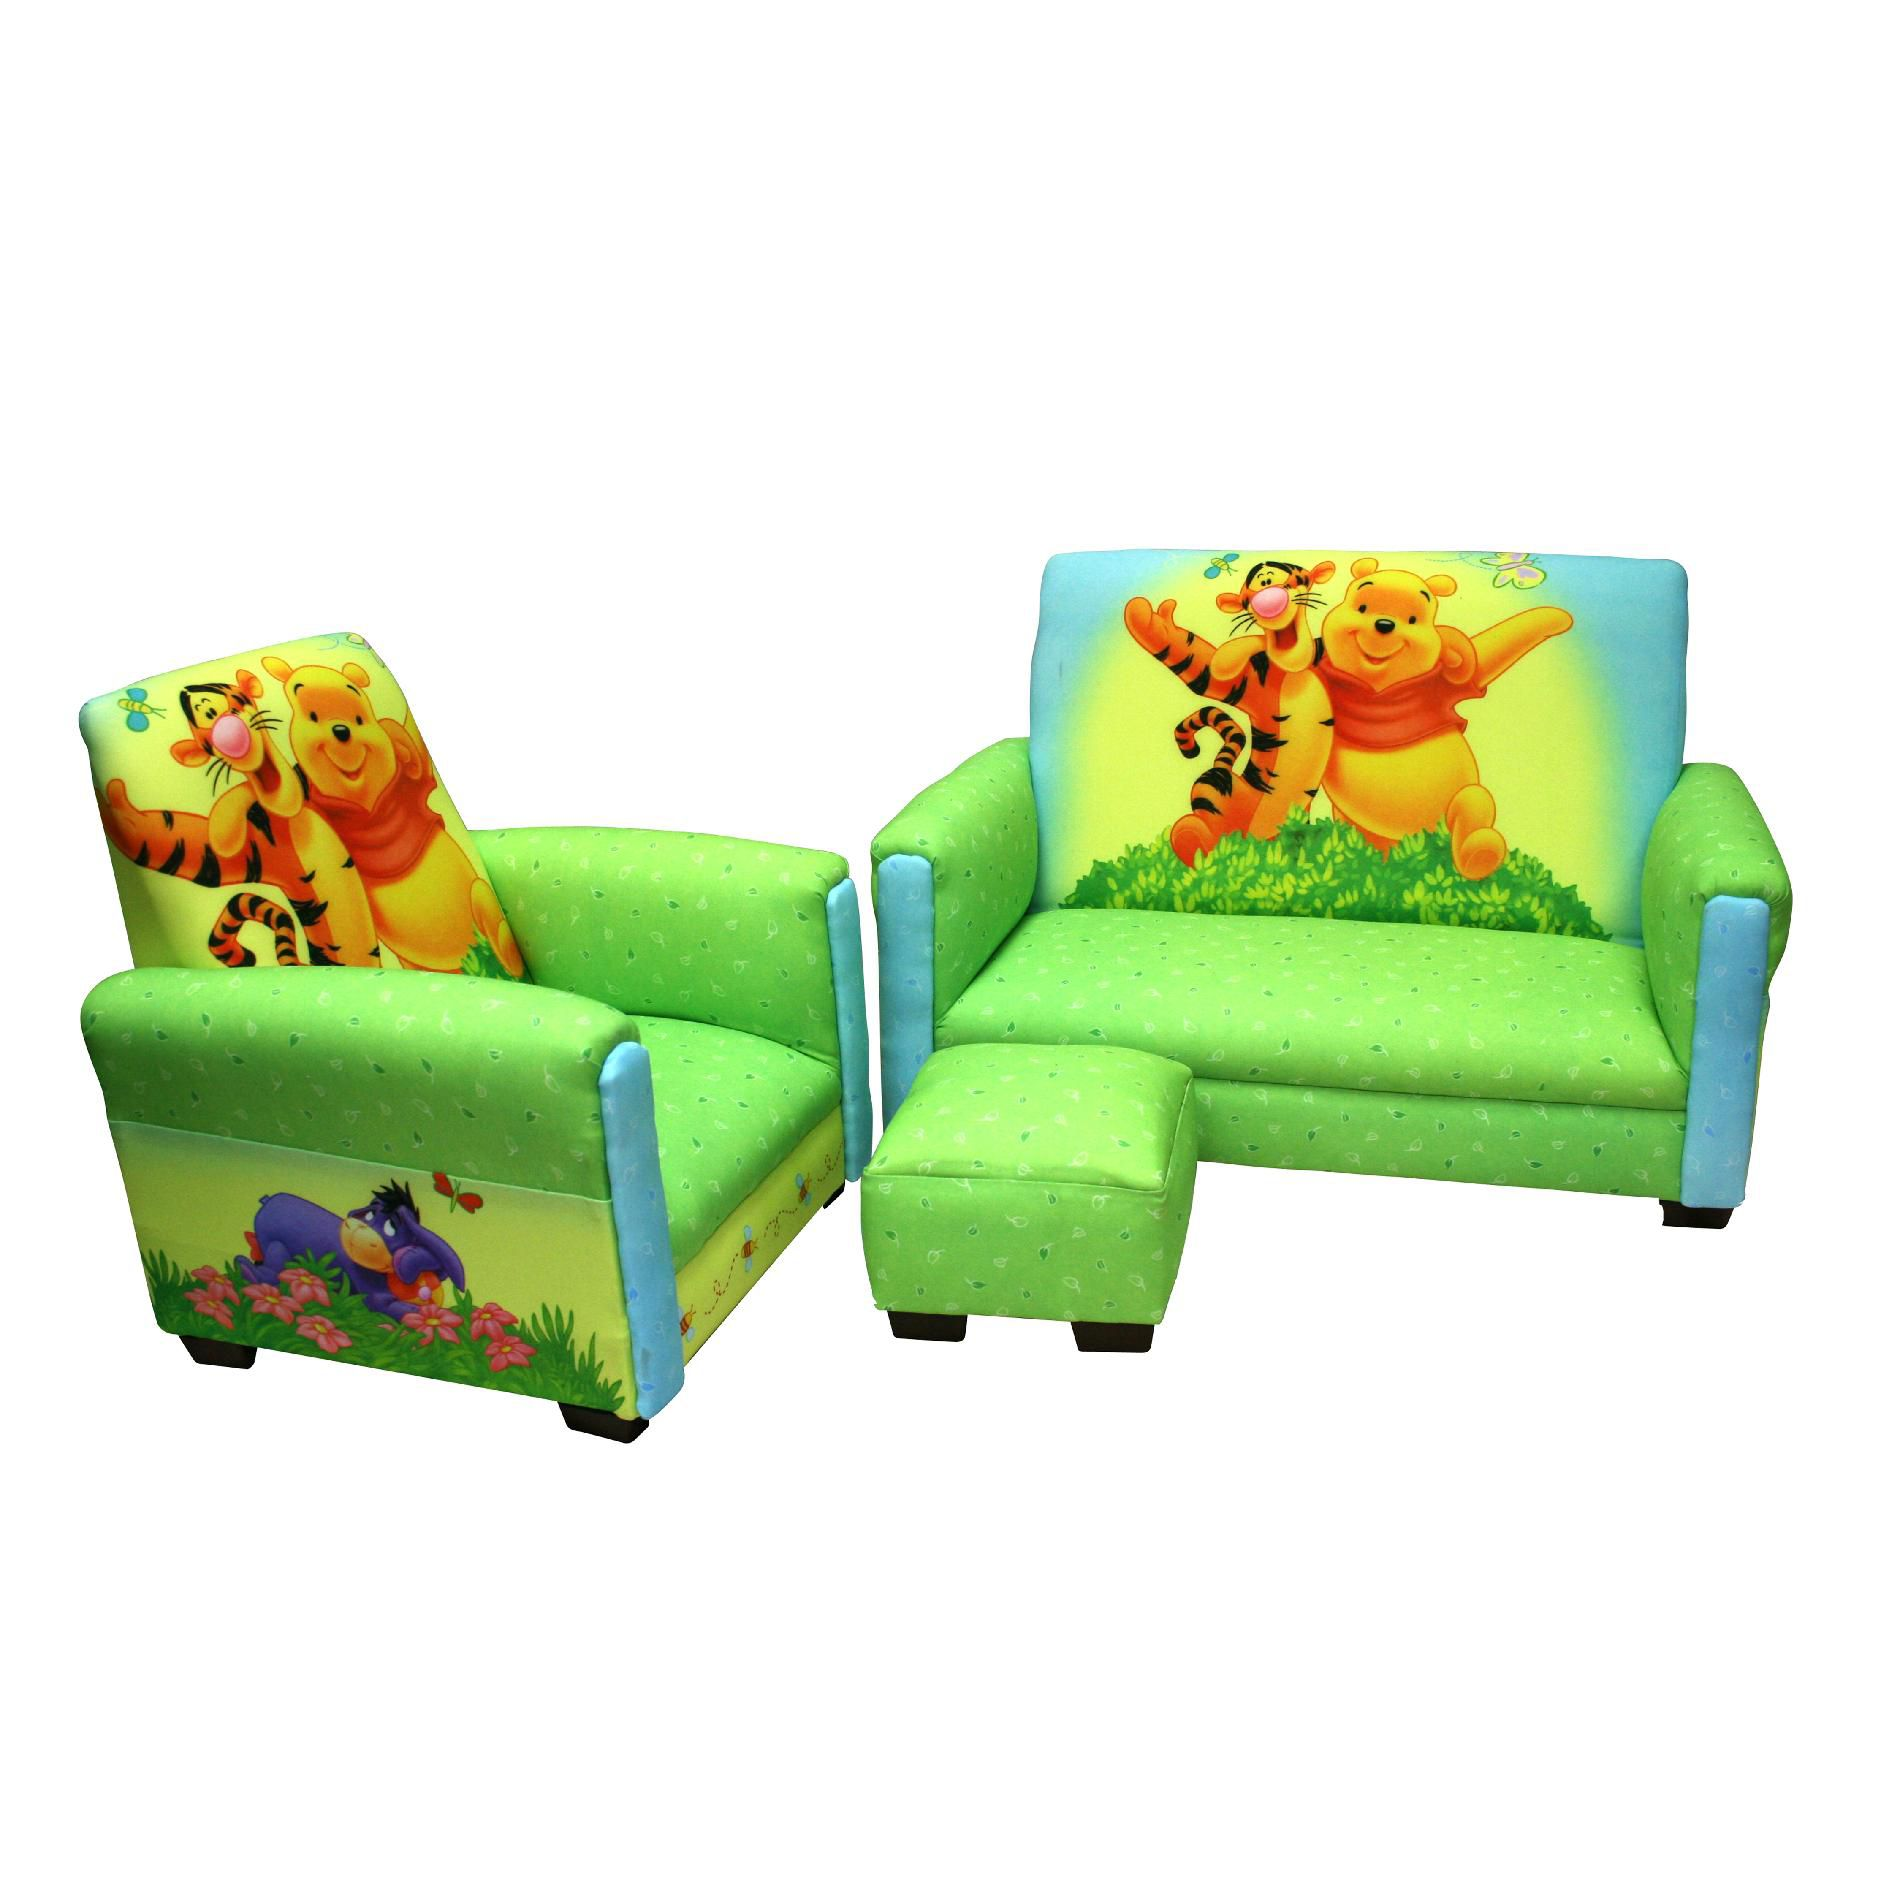 Sofa Chair For Toddler Delta Children Disney Winnie The Pooh Upholstered